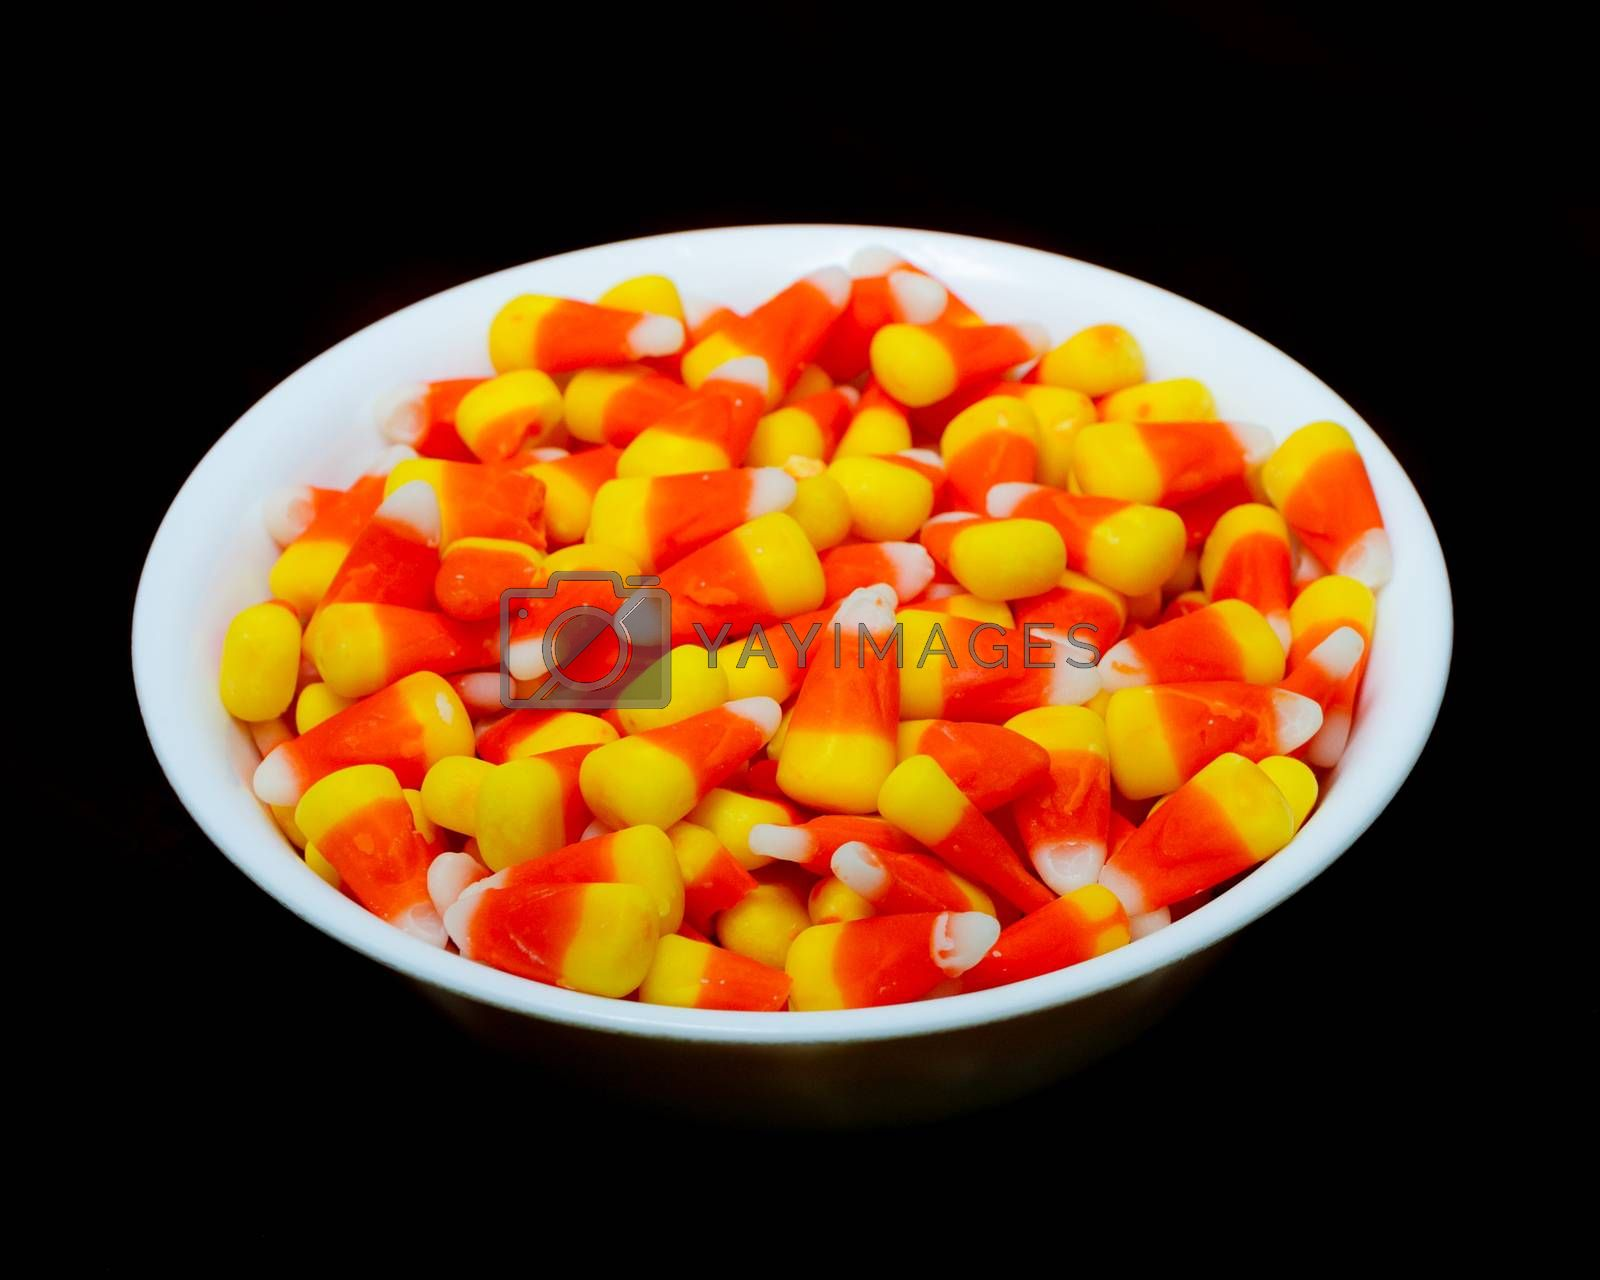 Candy Corn in a bowl isolated against a black background